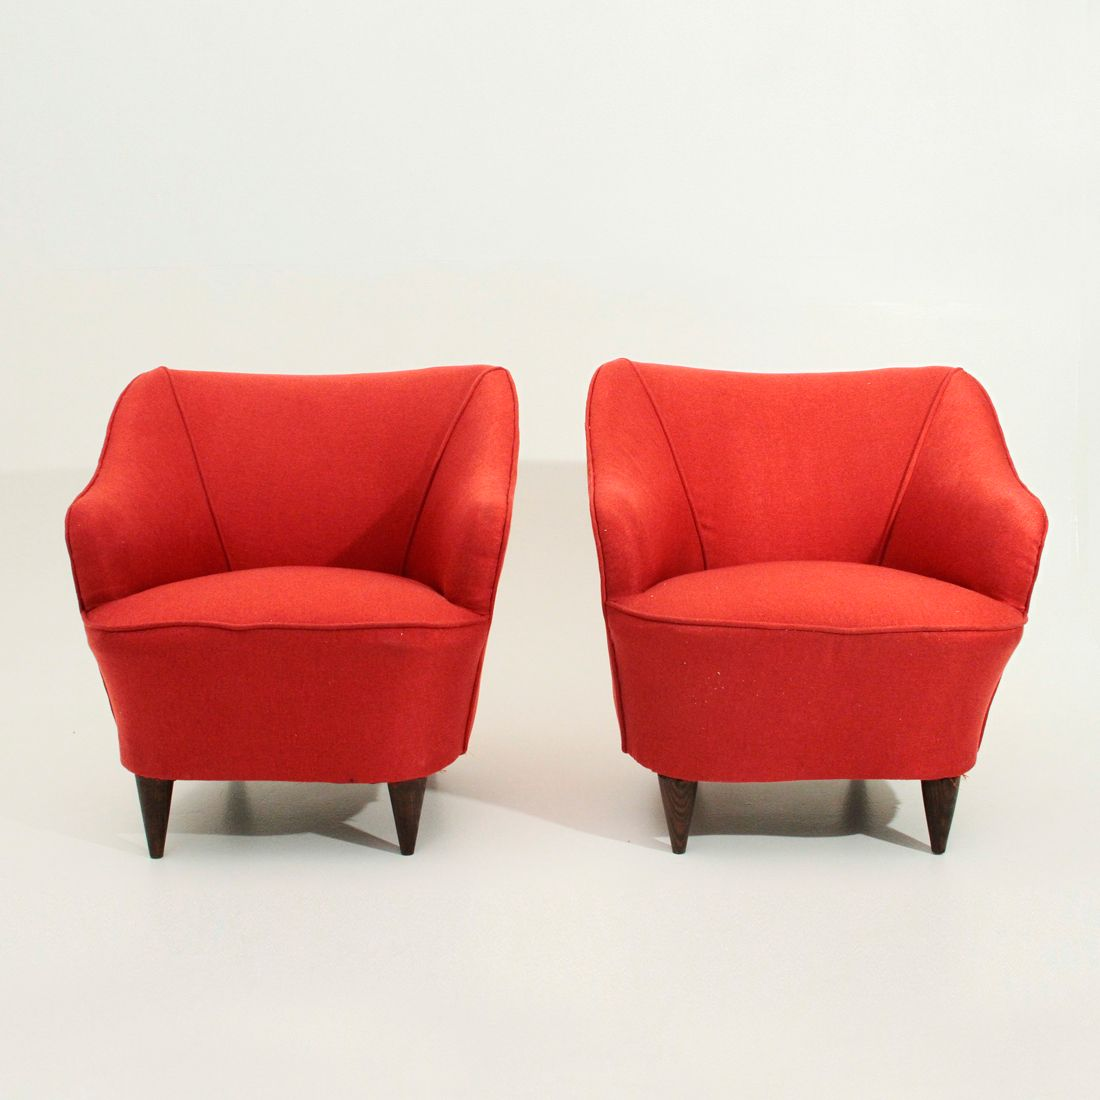 Italian Red Armchairs, 1940s, Set Of 2